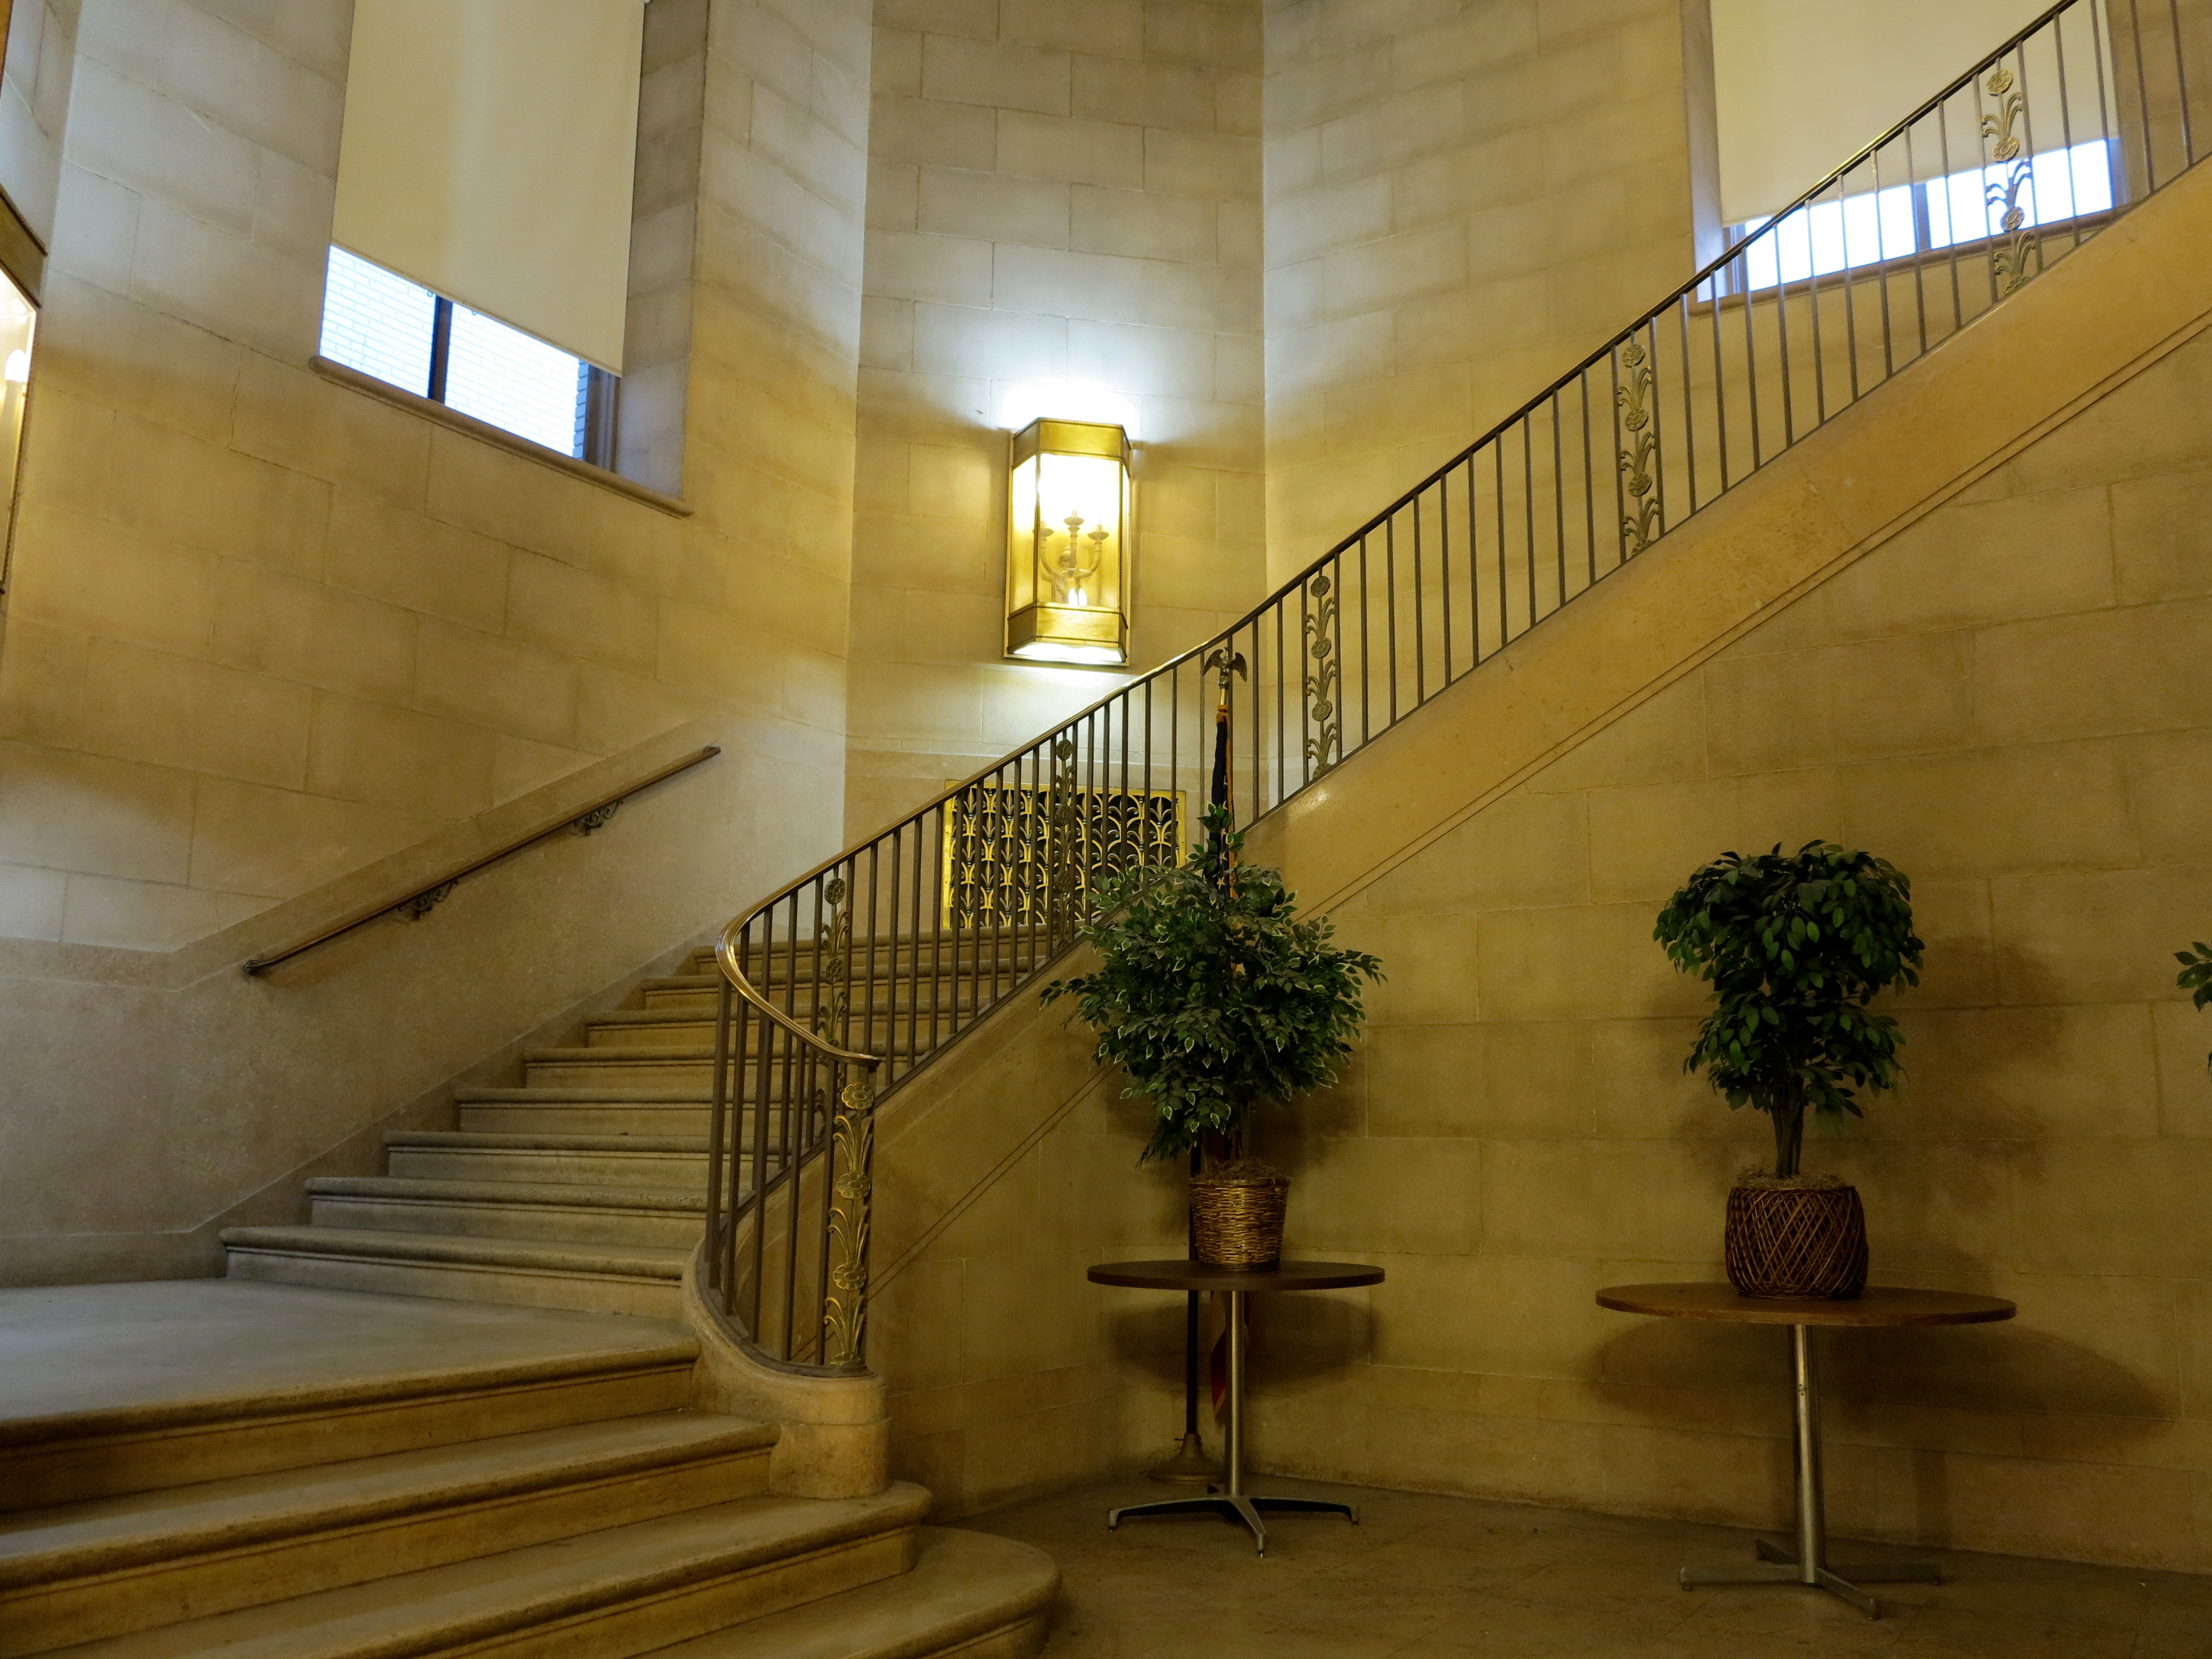 Stairwell, Family Court